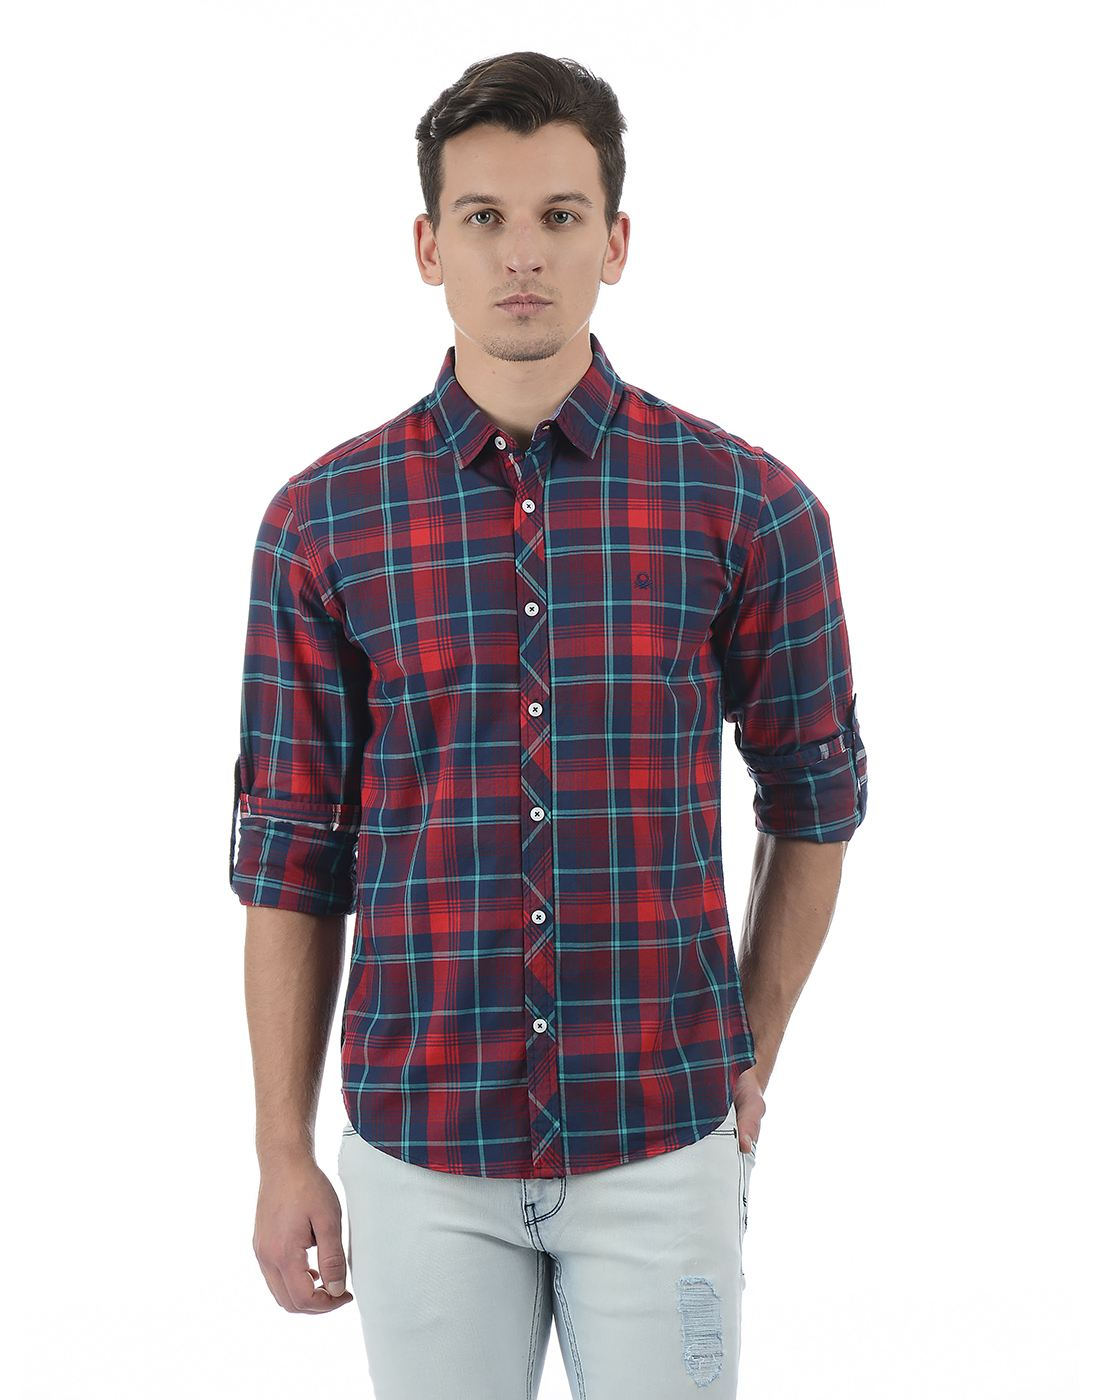 United Colors of Benetton Men's Multicolor Checkered Shirt